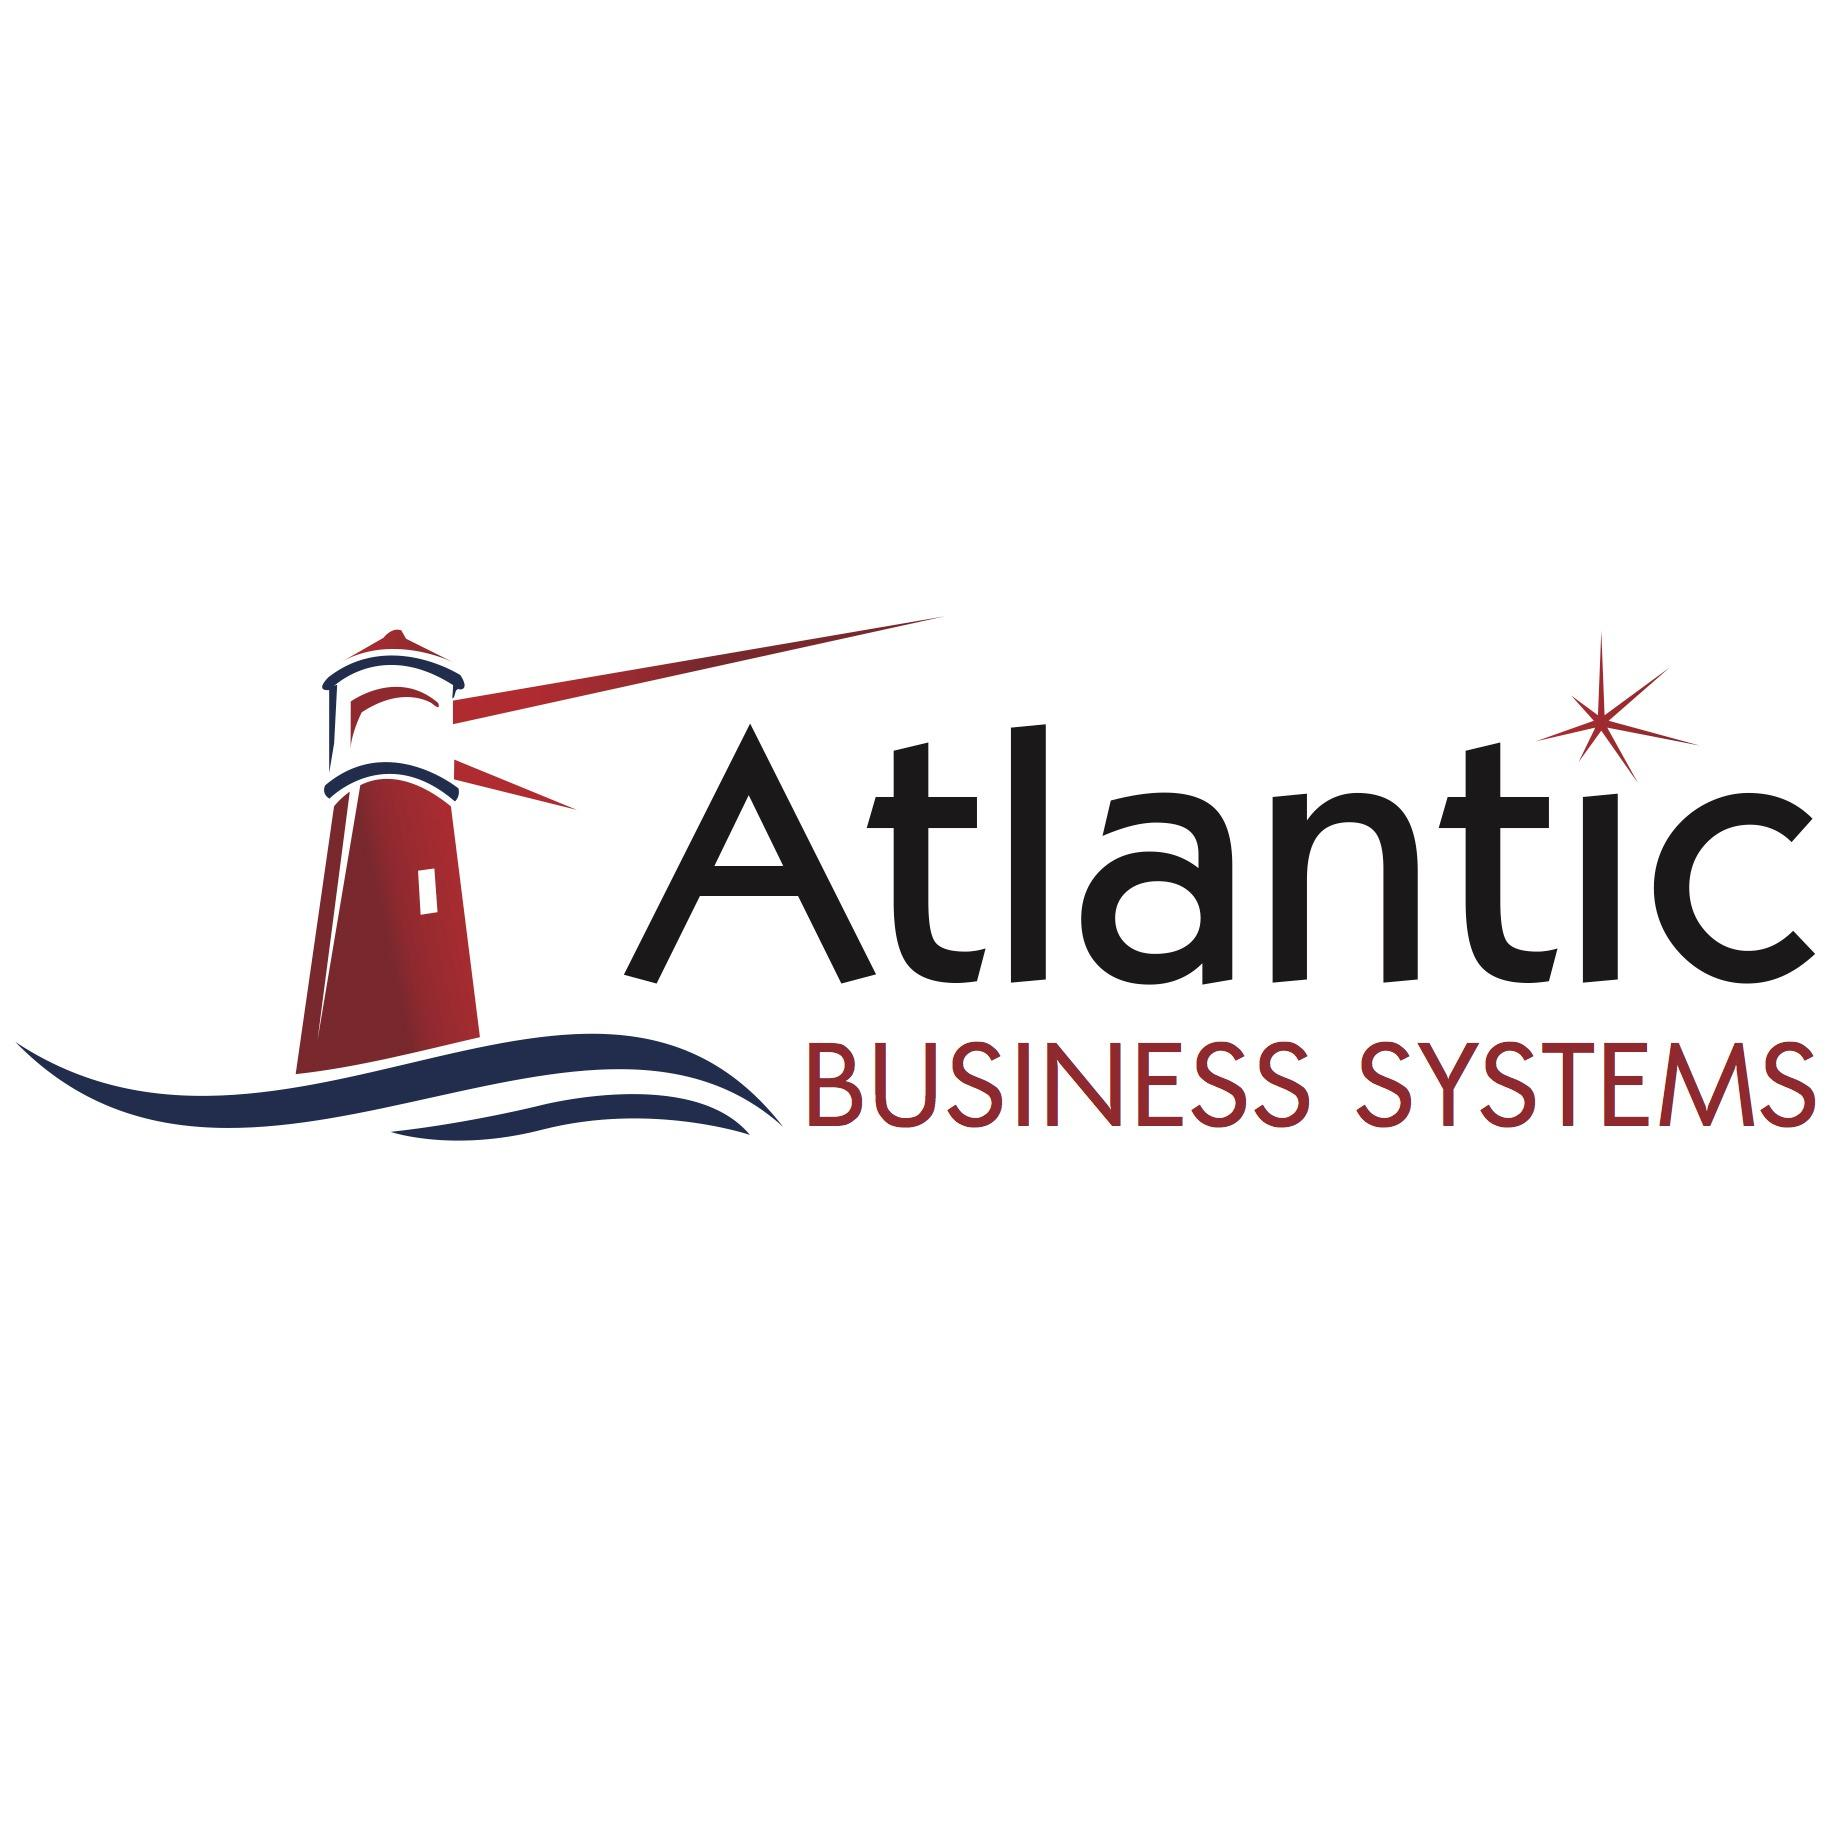 Atlantic Business Systems - Melbourne, FL - Computer Repair & Networking Services